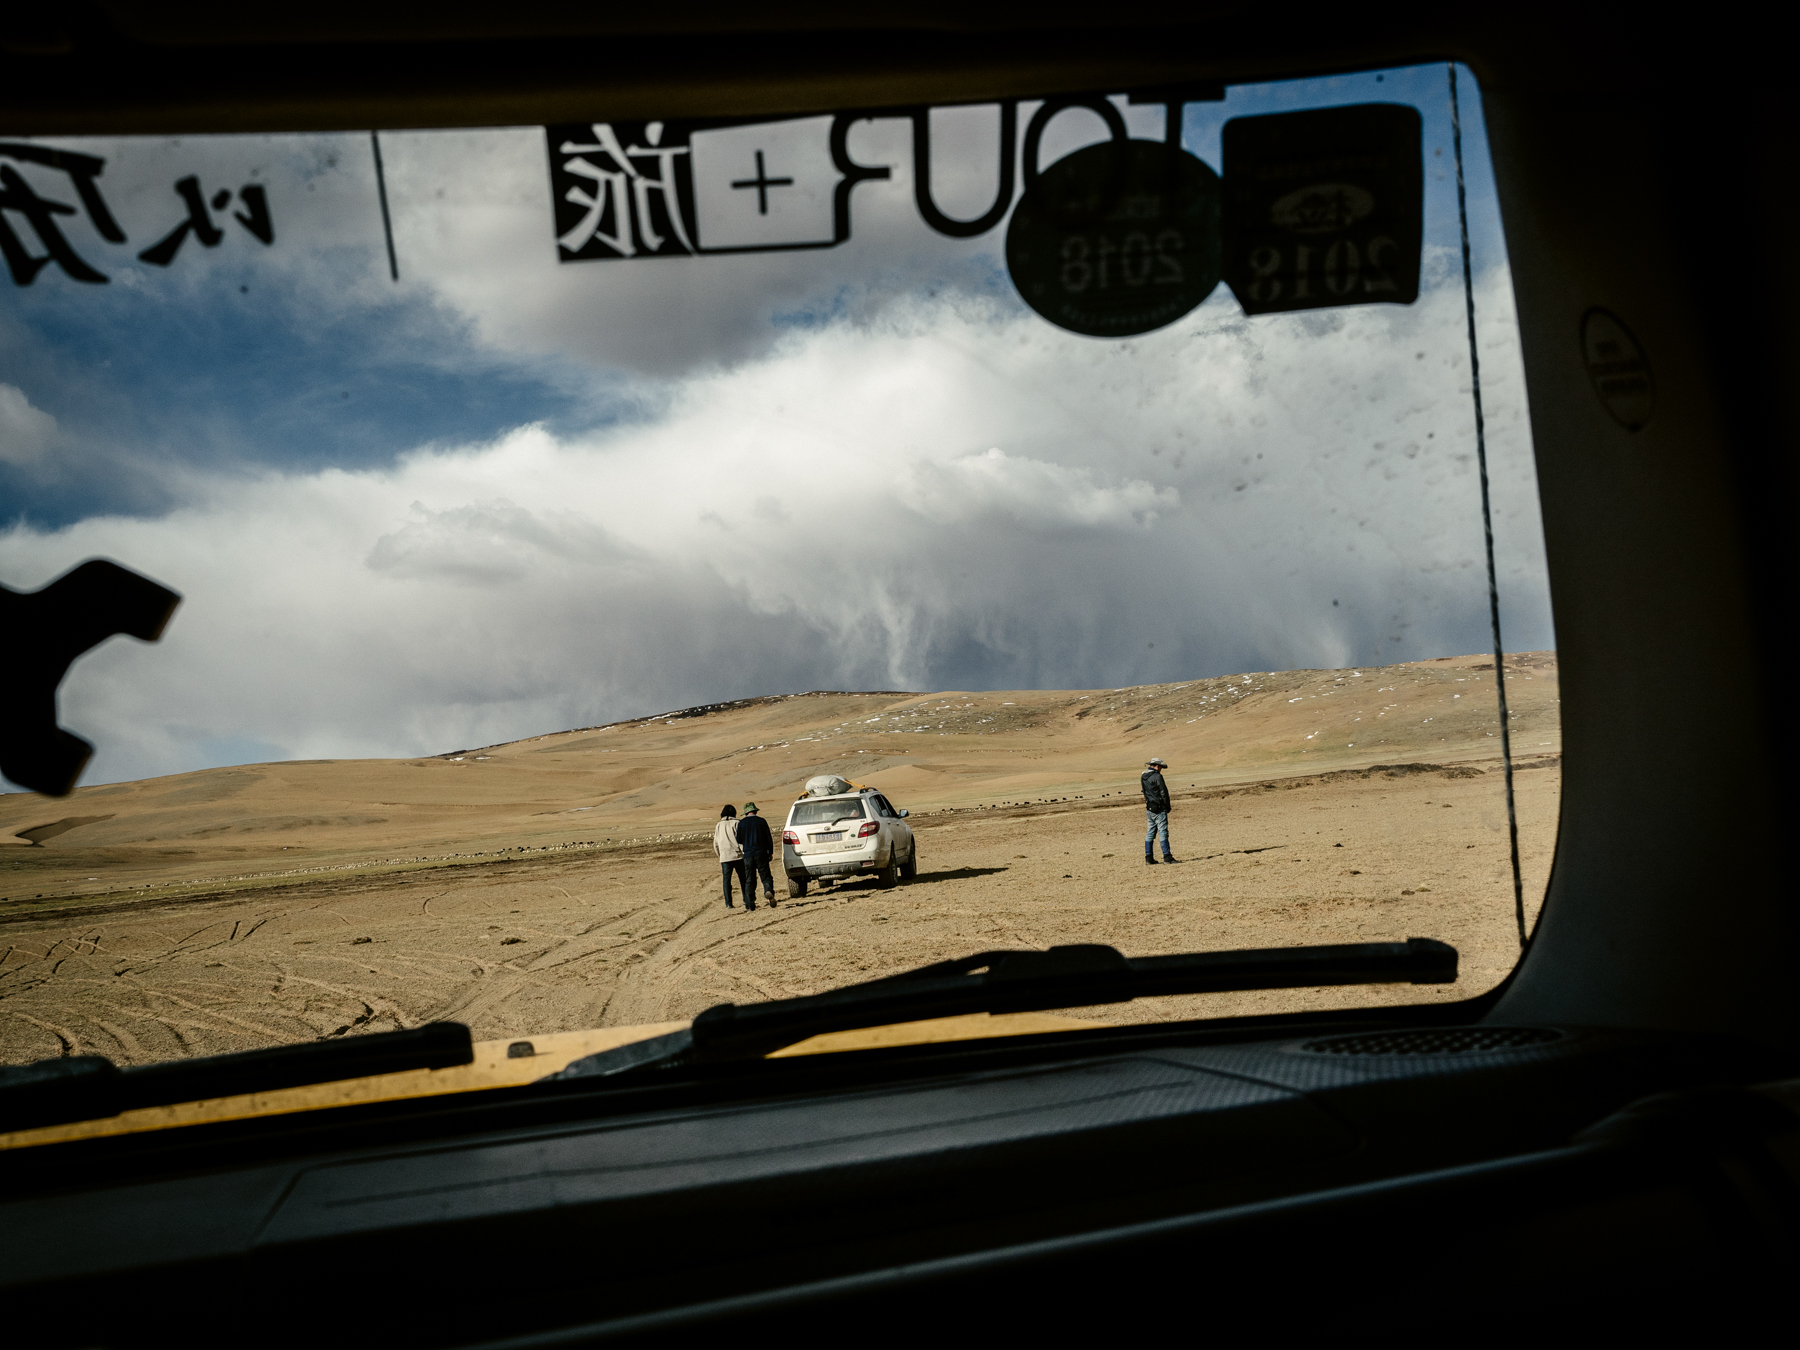 Rain clouds approach in the desert as the team is en route to a campsite near a tributary of the Yellow River. Animals graze at the edge of a grassland.